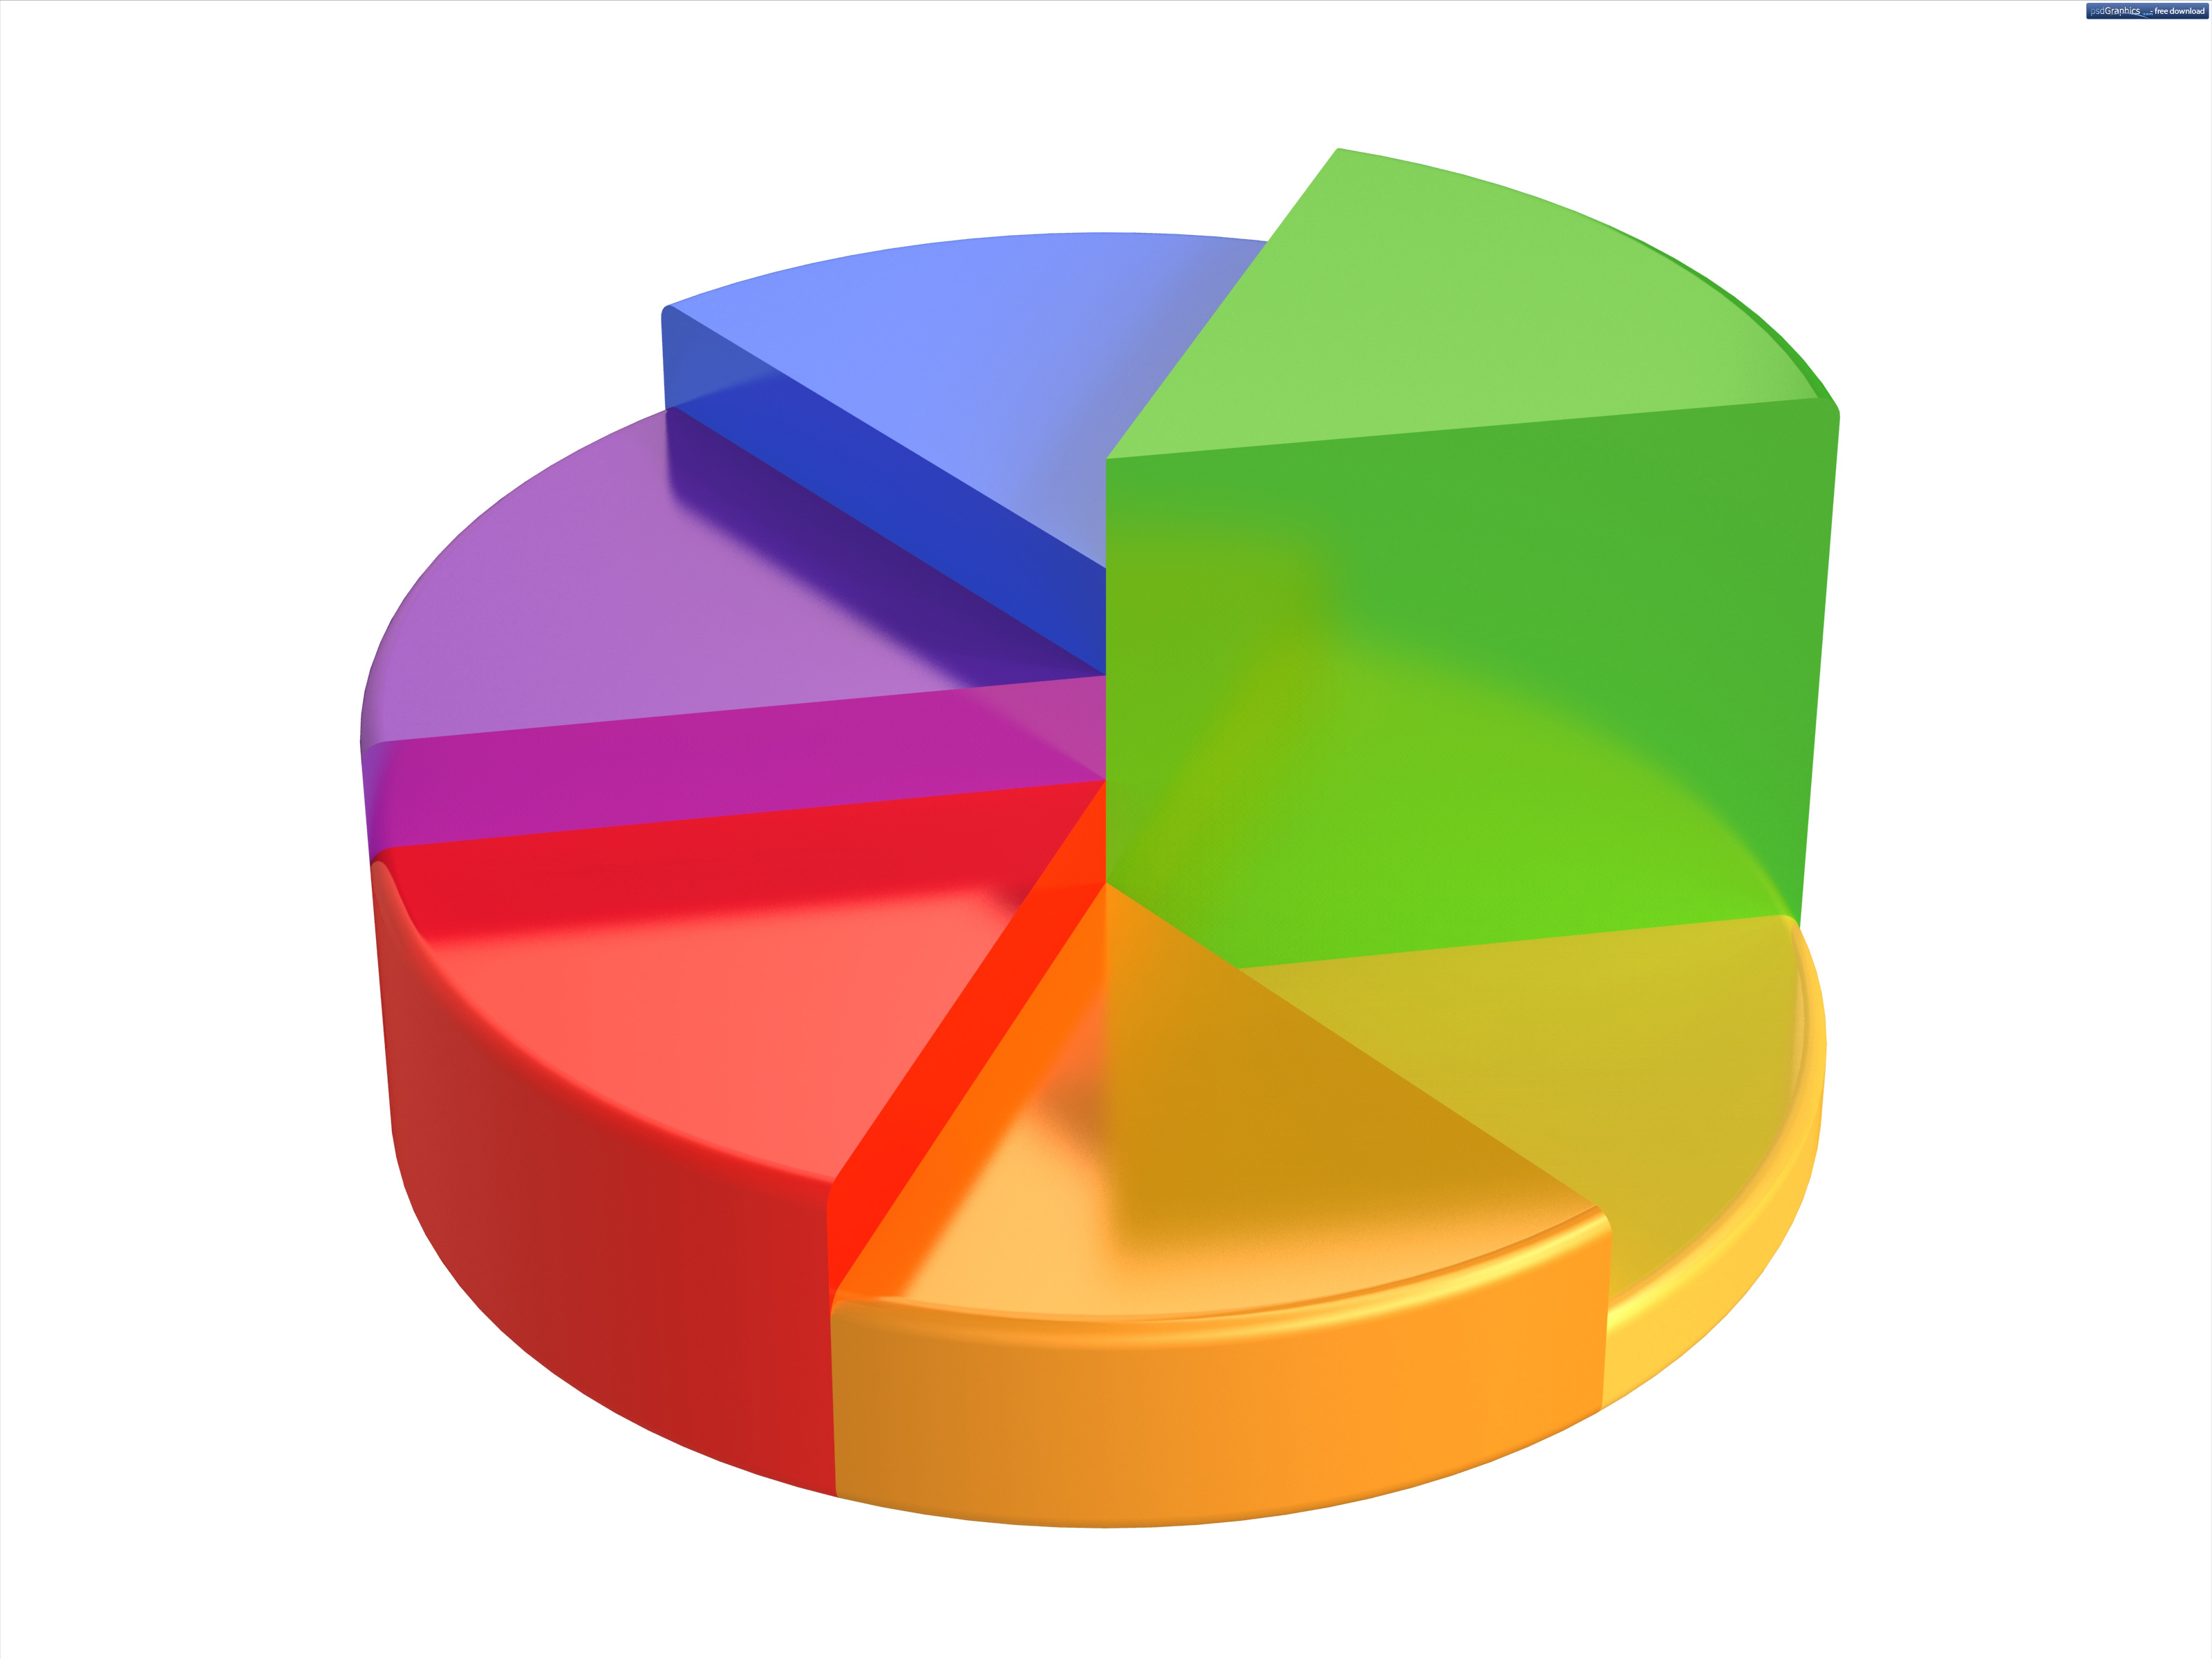 graphs e mail graph pie chart